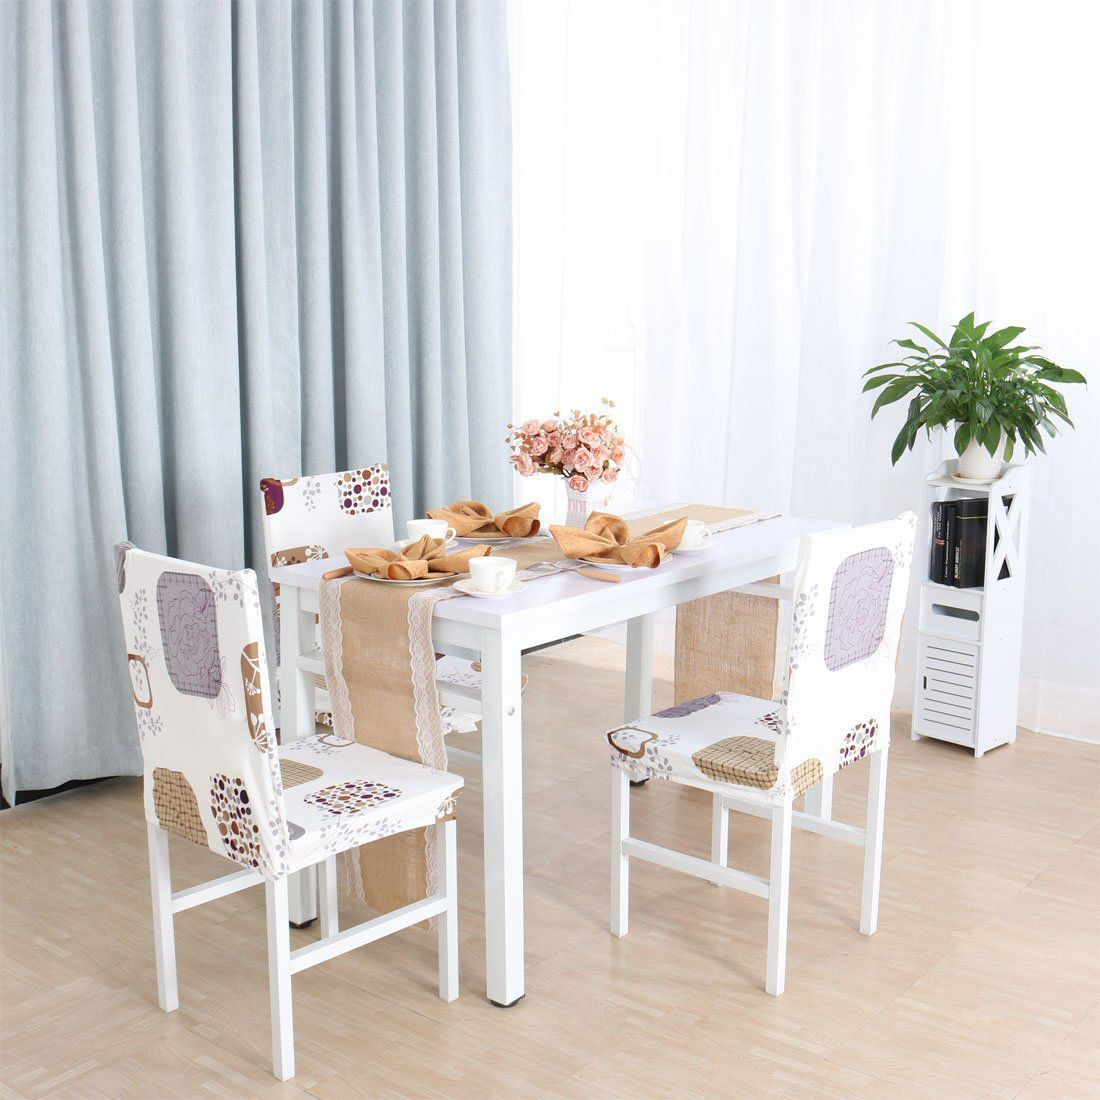 Square Removable Washable Short Chairs Covers Protector Seat Slipcover for Wedding Party Restaurant Banquet Home Decor Dining